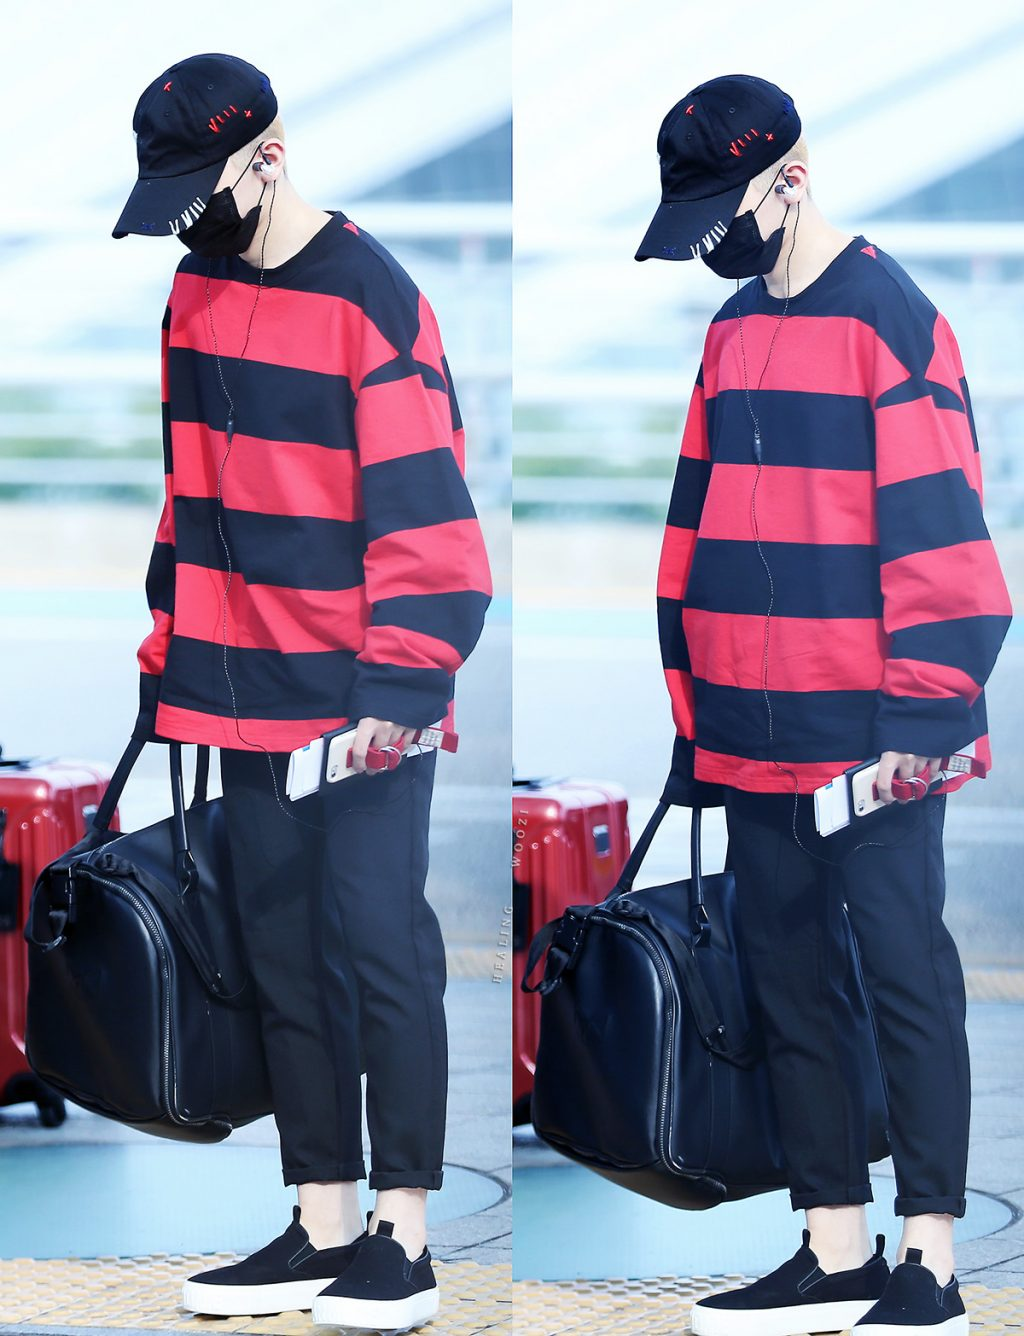 woozi-airport-fashion2